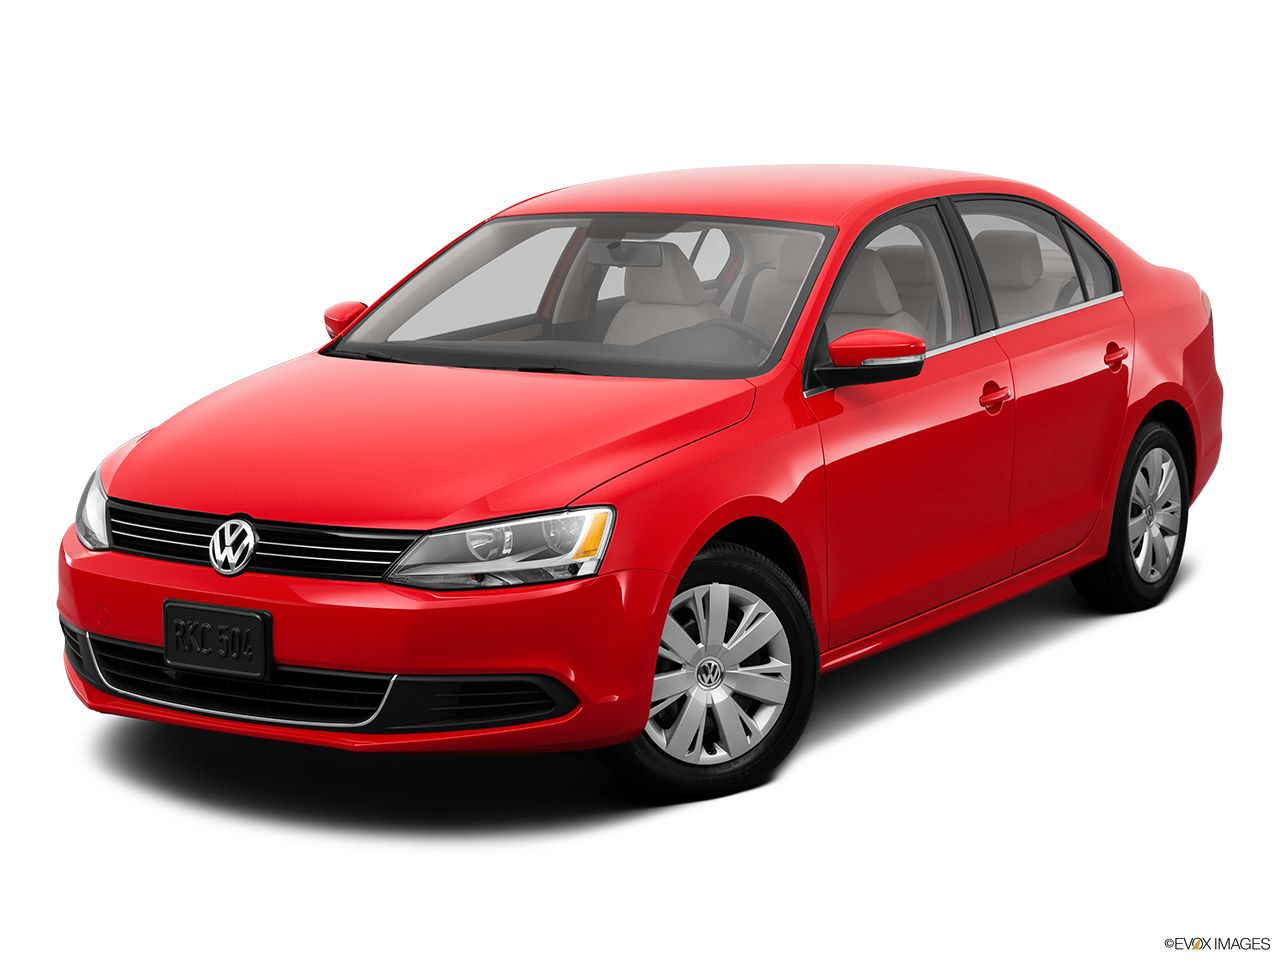 2015 volkswagen jetta sedan 4 door auto 1 8t se. Black Bedroom Furniture Sets. Home Design Ideas